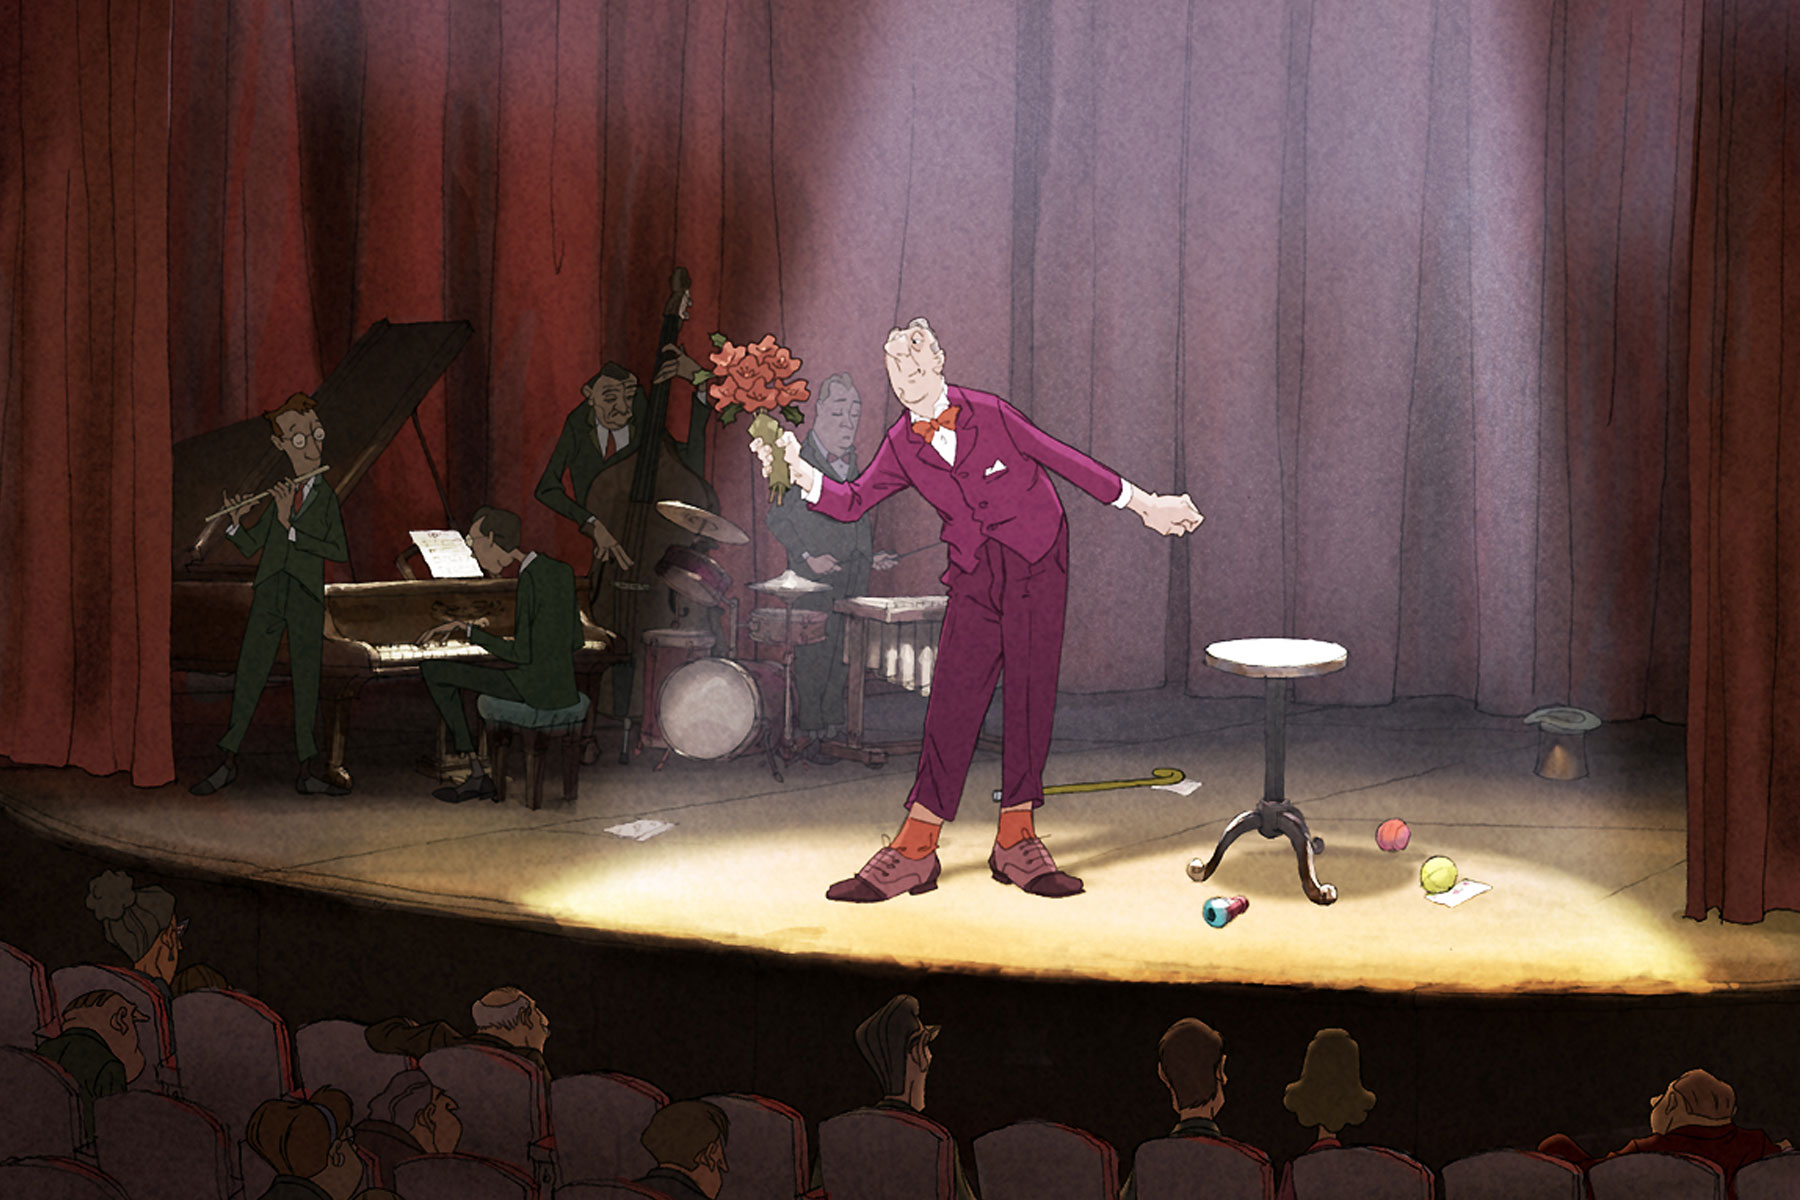 SYLVAIN CHOMET - The Illusionist